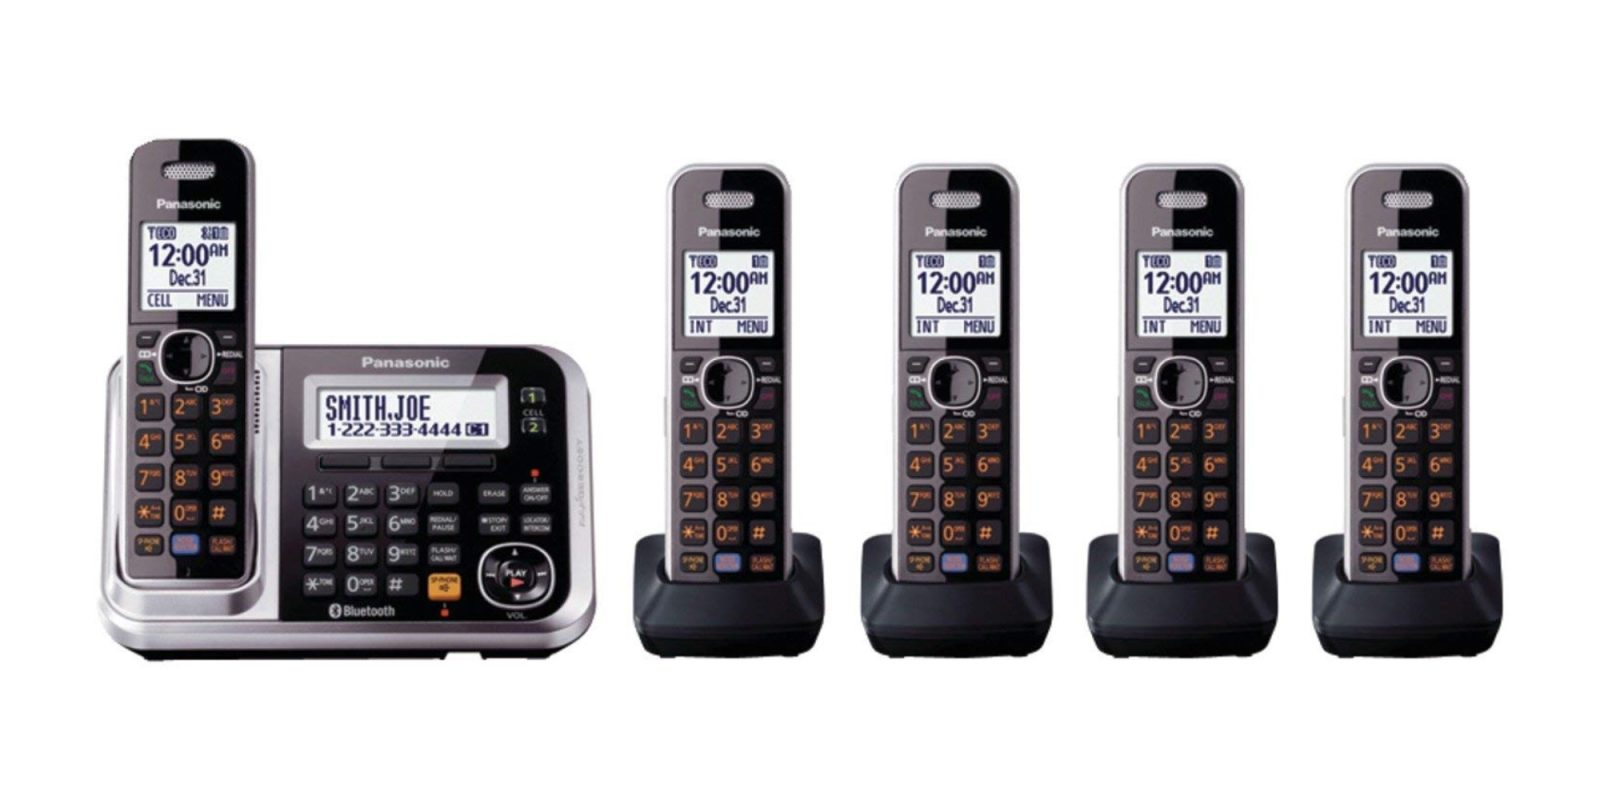 Add Panasonic's Bluetooth Phone Set to your small business for $85 (26% off)